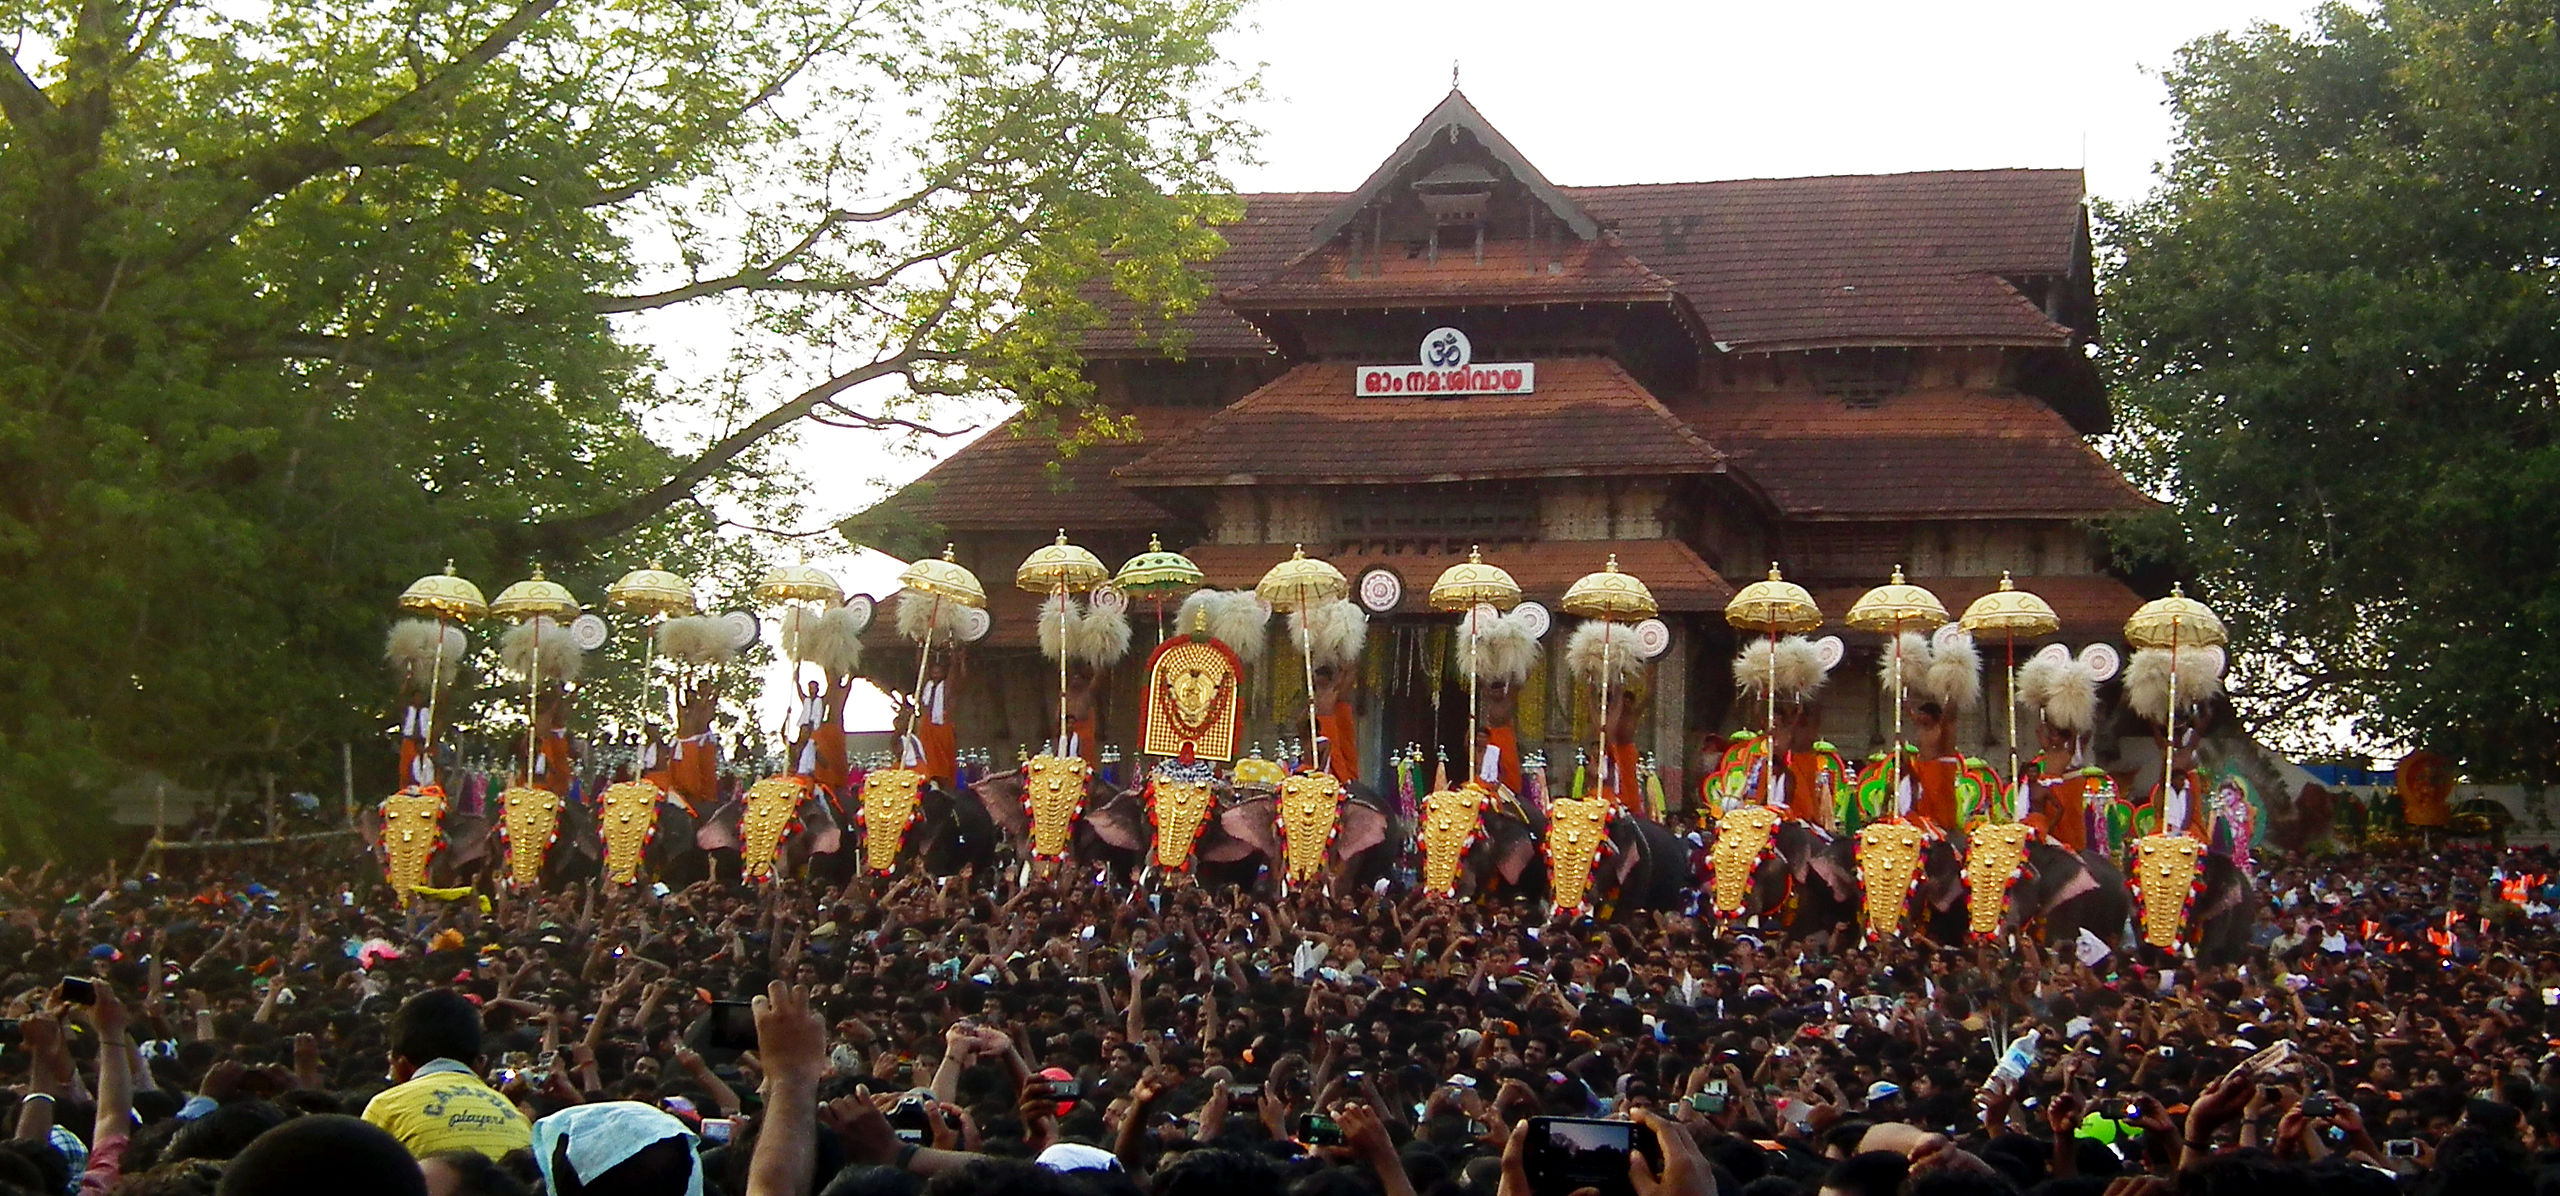 Kudamatom at thrissur pooram 2013 7618.JPG